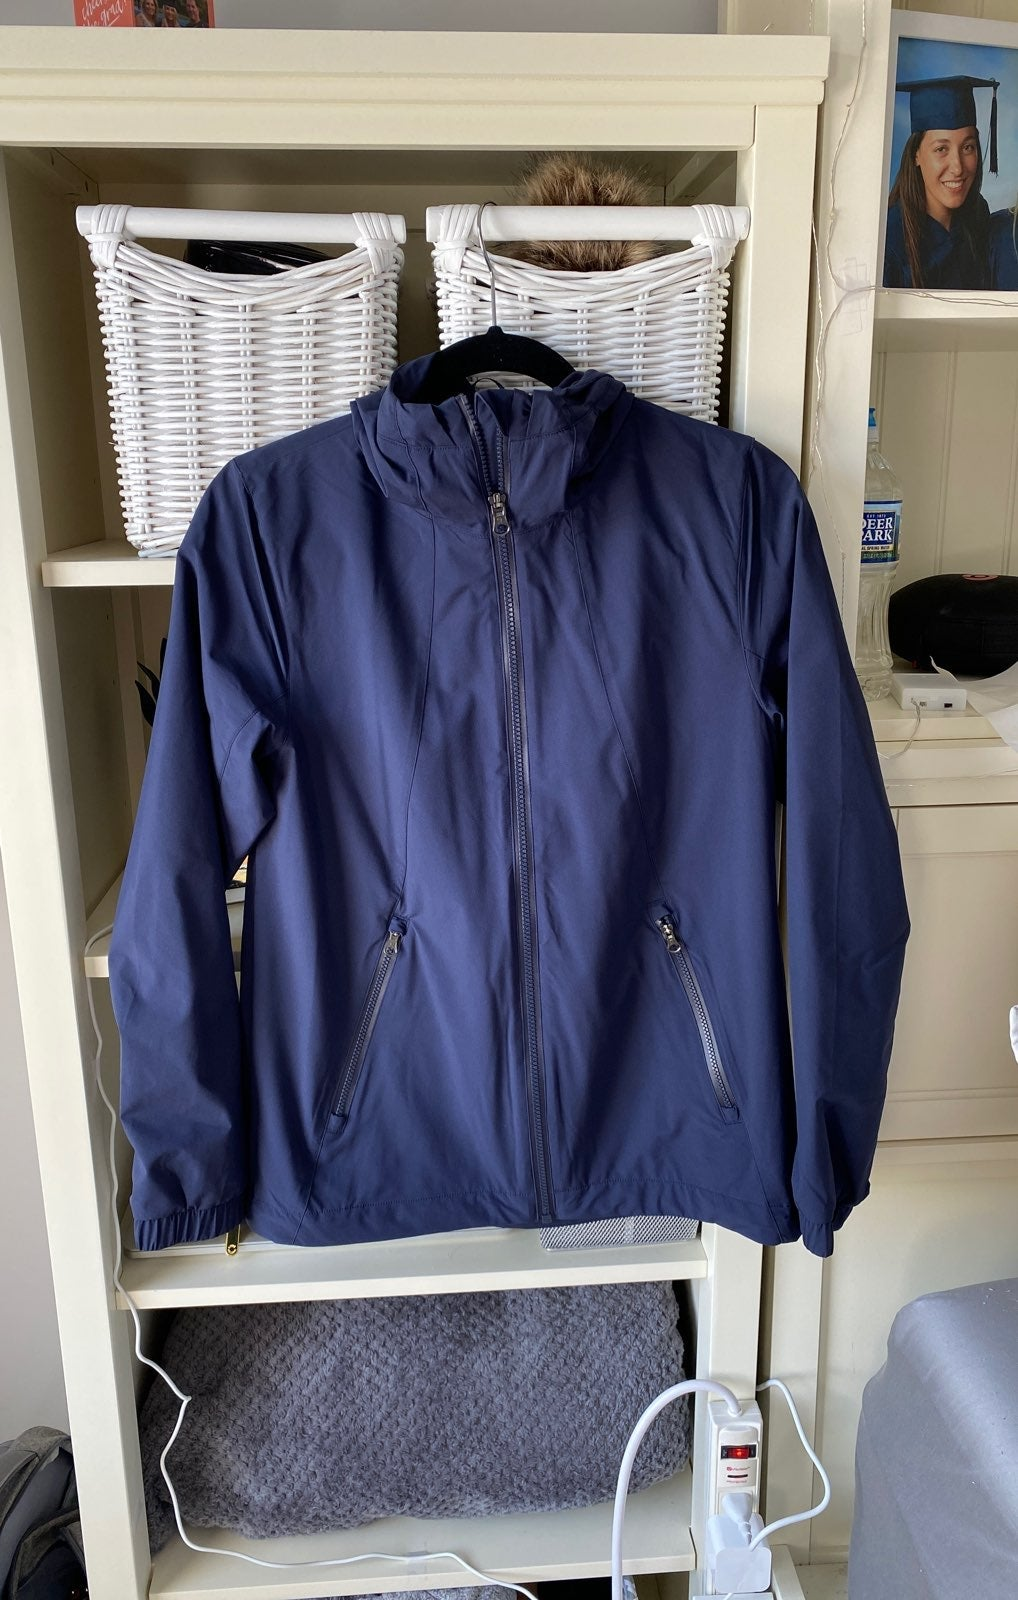 Lululemon Jacket/Windbreaker Size 6 Navy